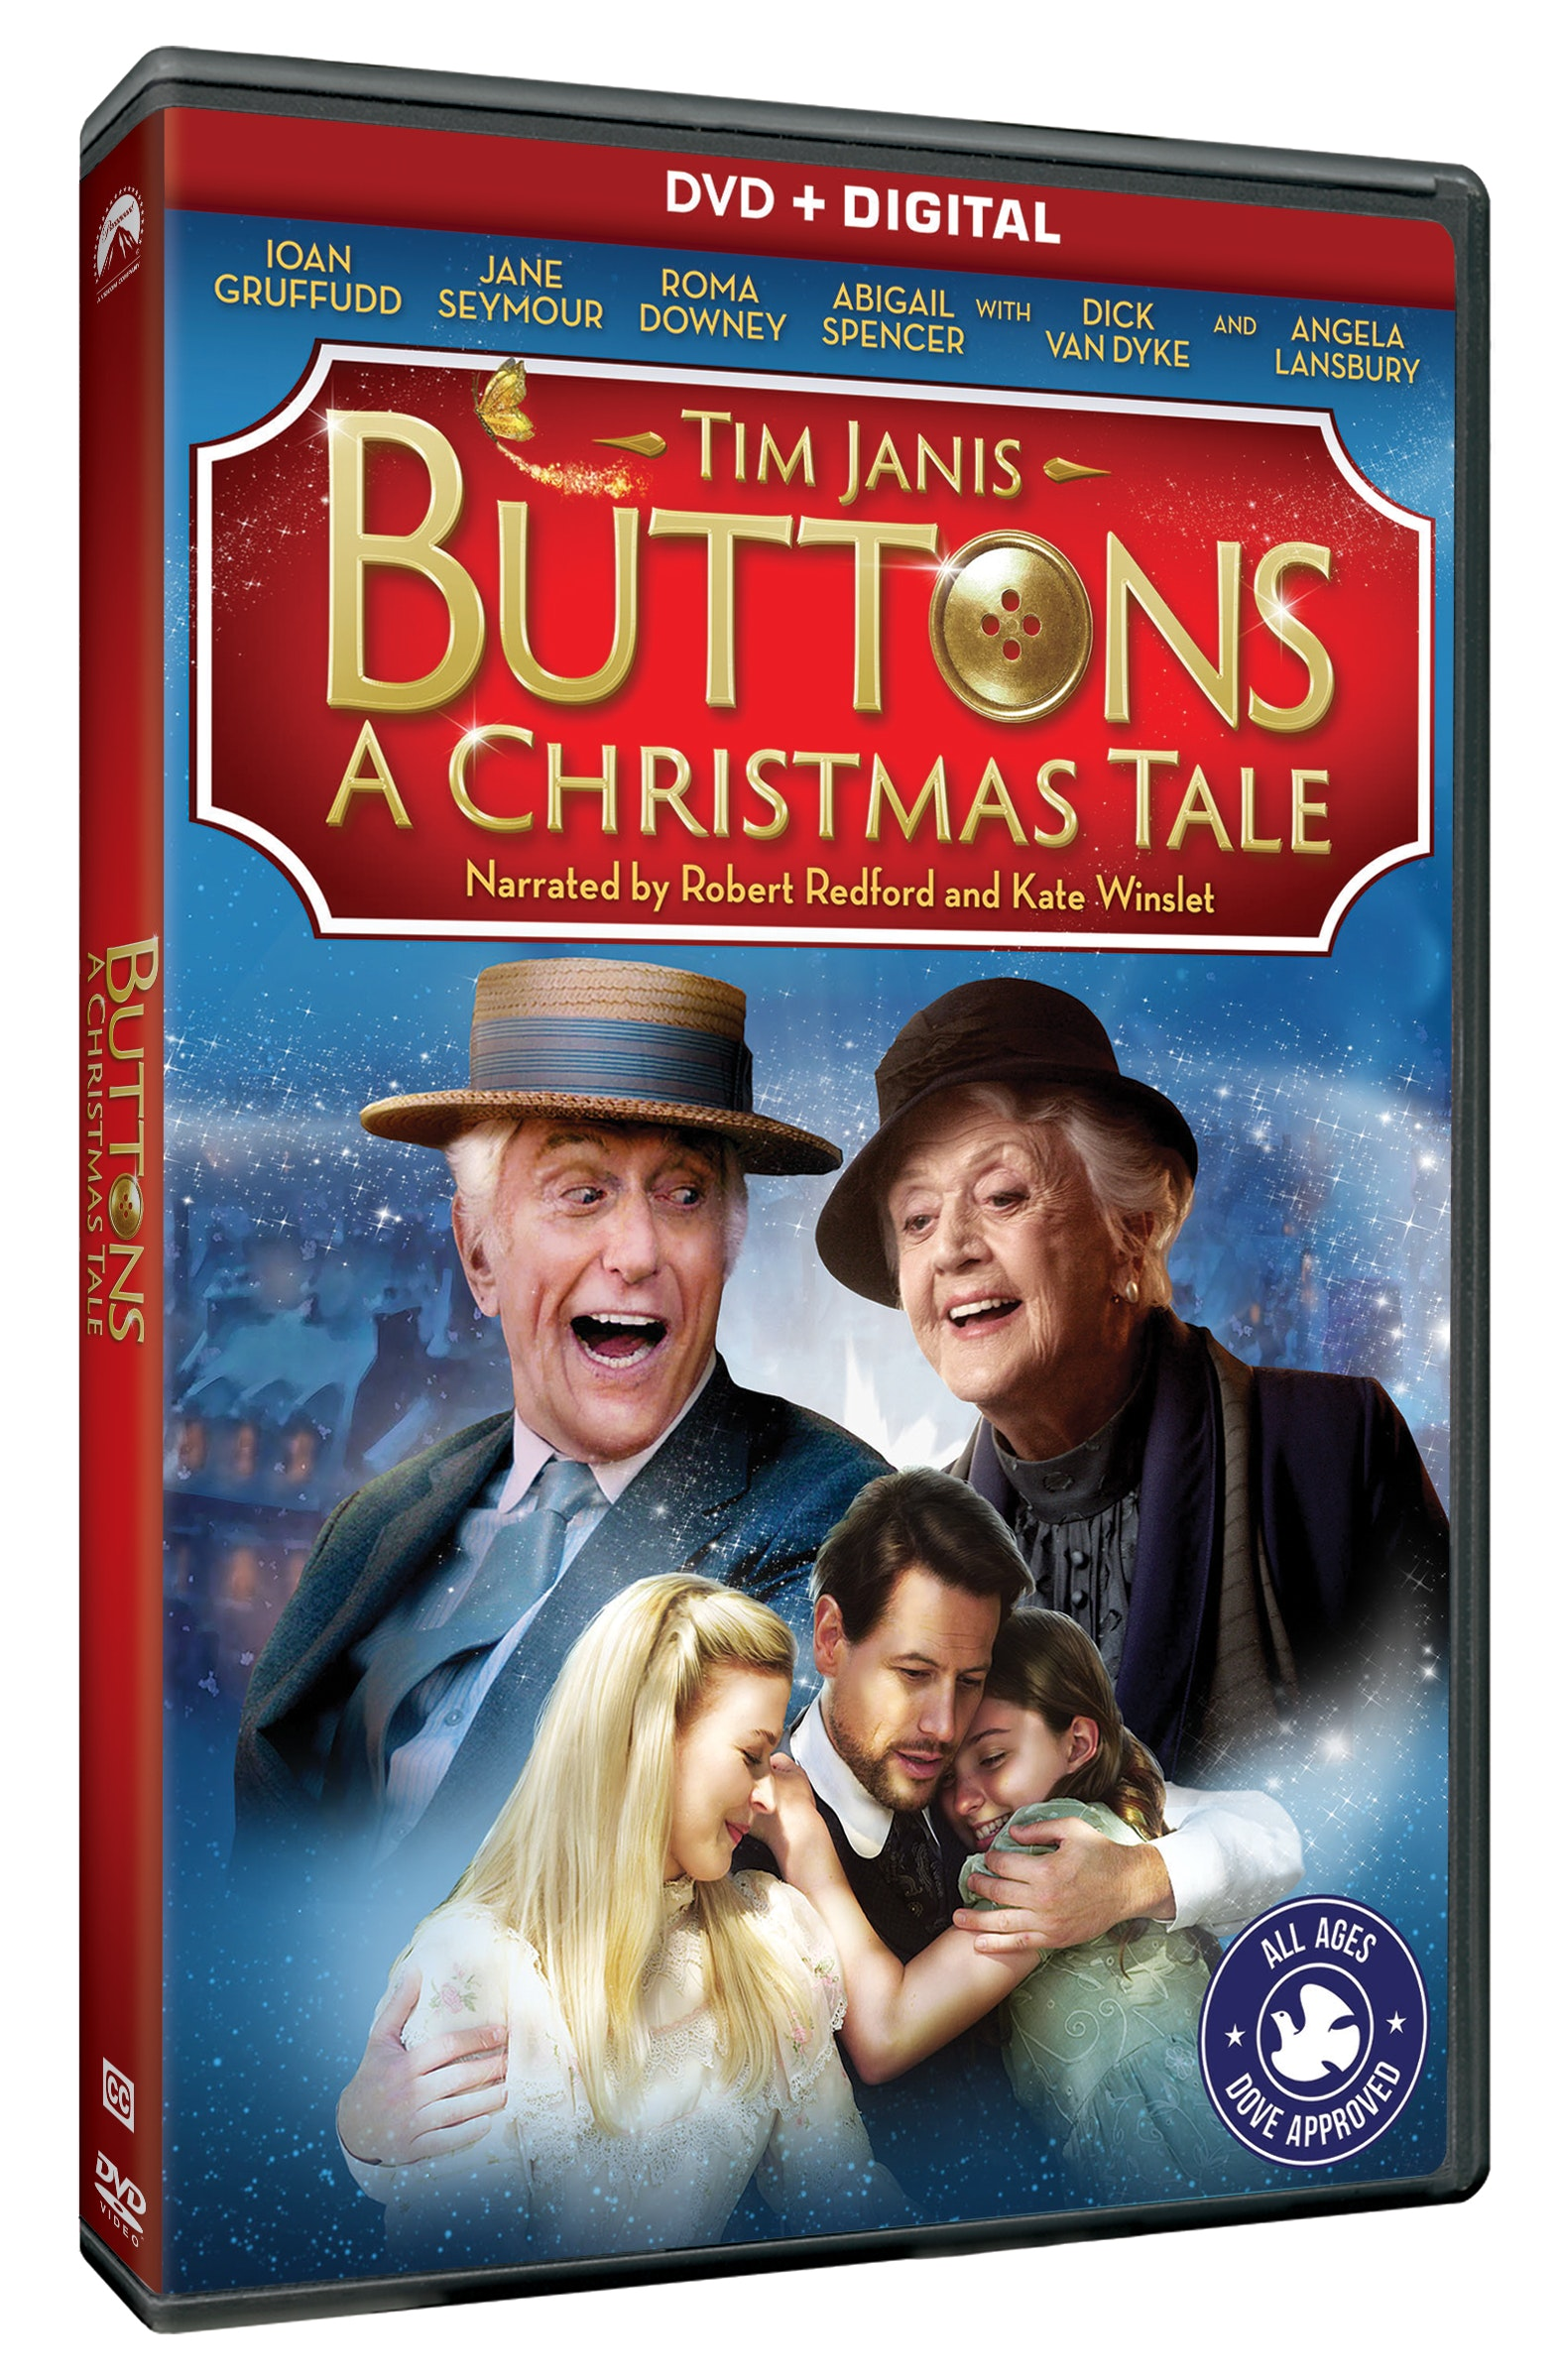 BUTTONS: A CHRISTMAS TALE Blu-ray